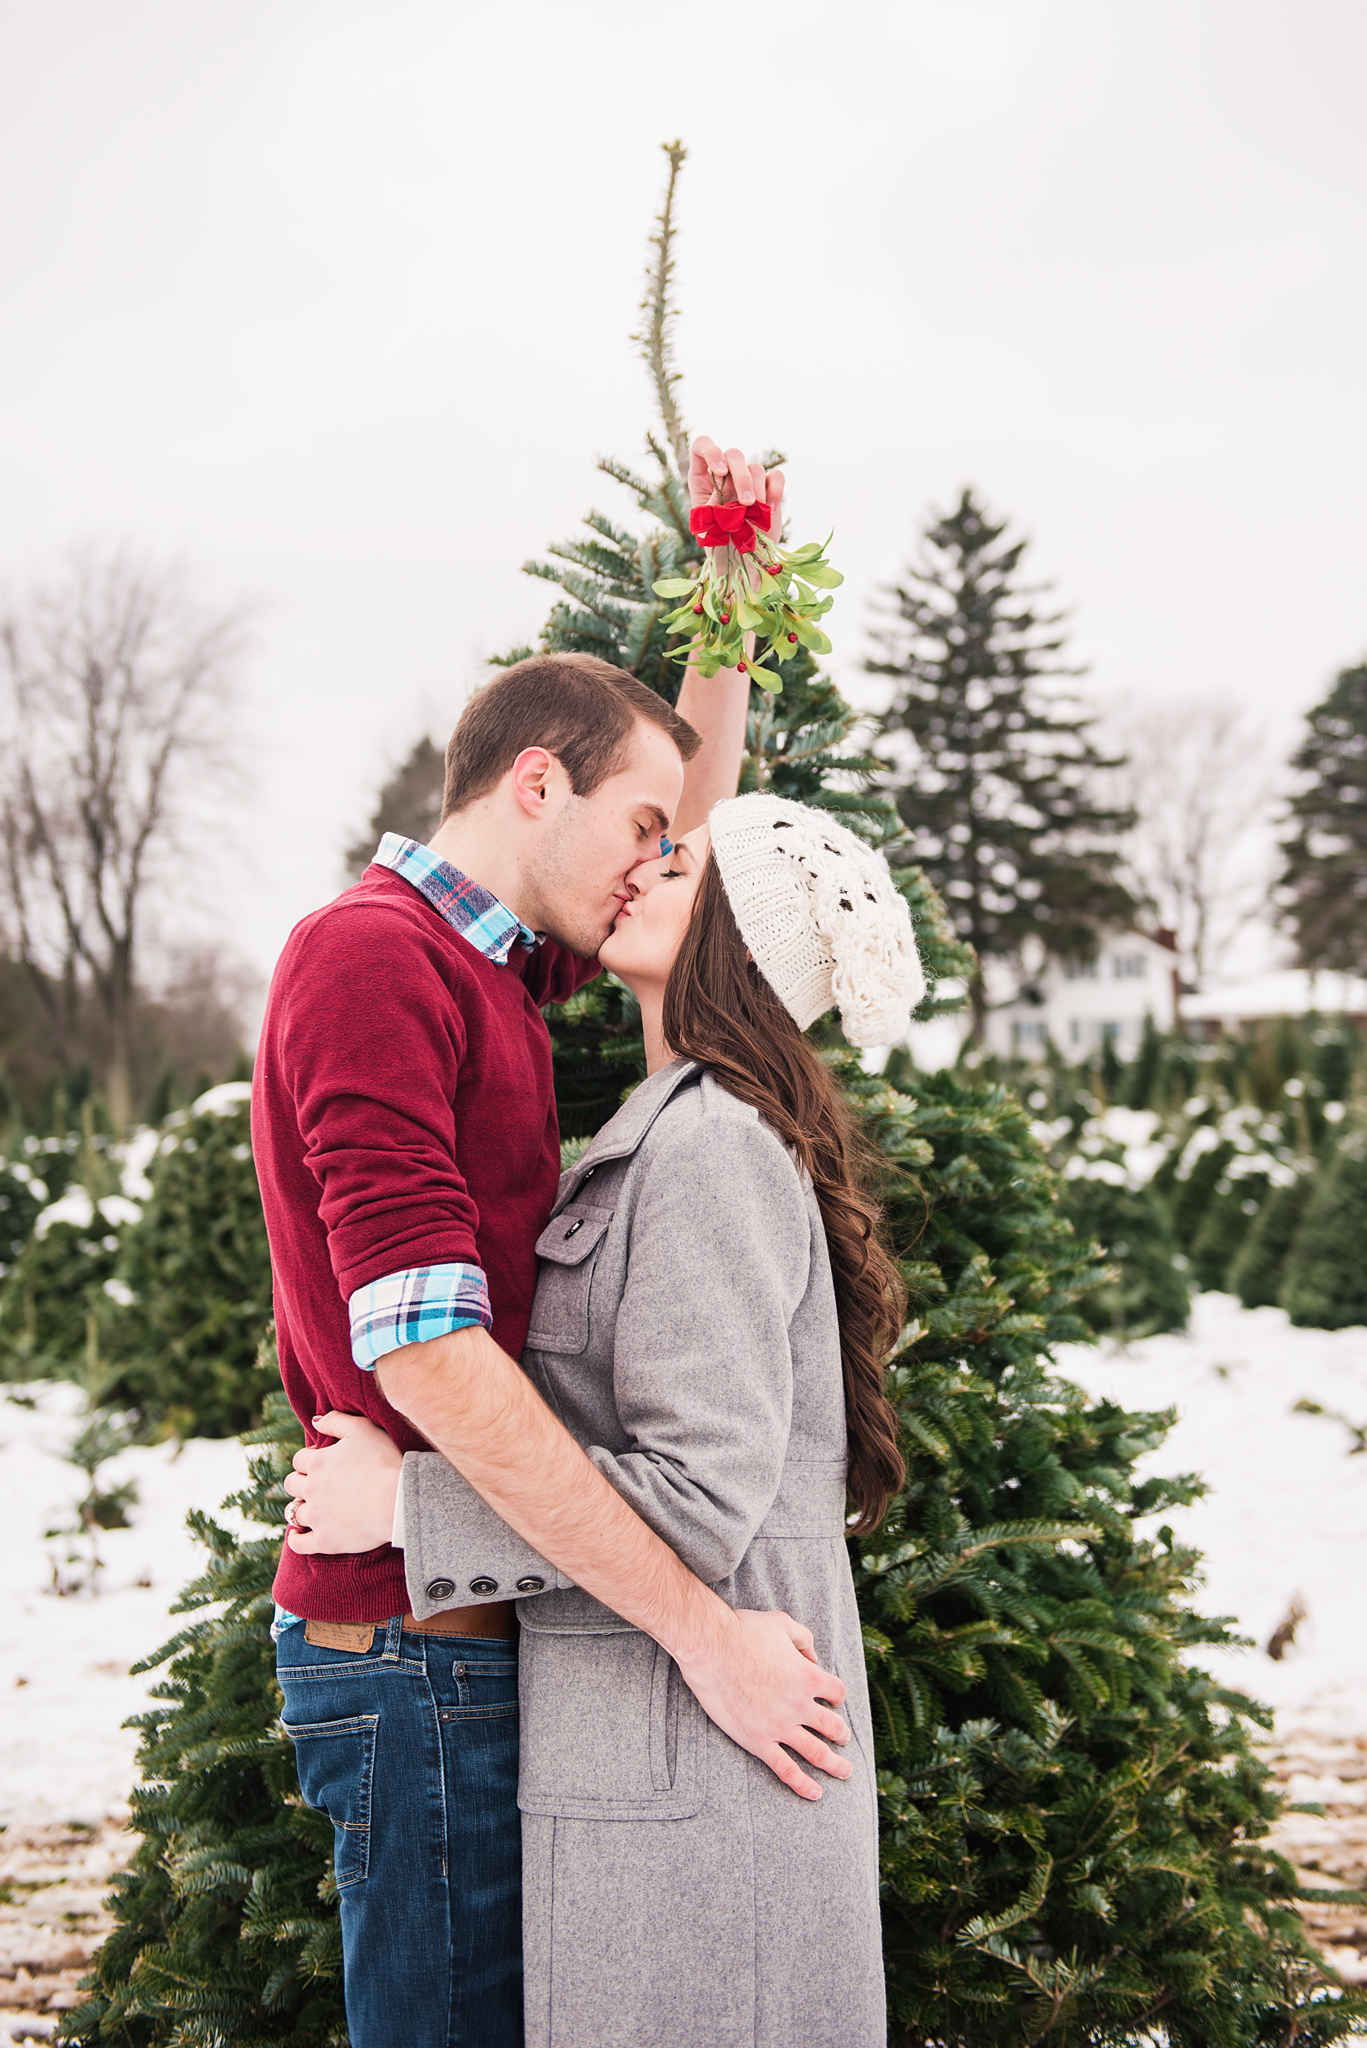 Woody_Acres_Rochester_Engagement_Session_JILL_STUDIO_Rochester_NY_Photographer_153807.jpg